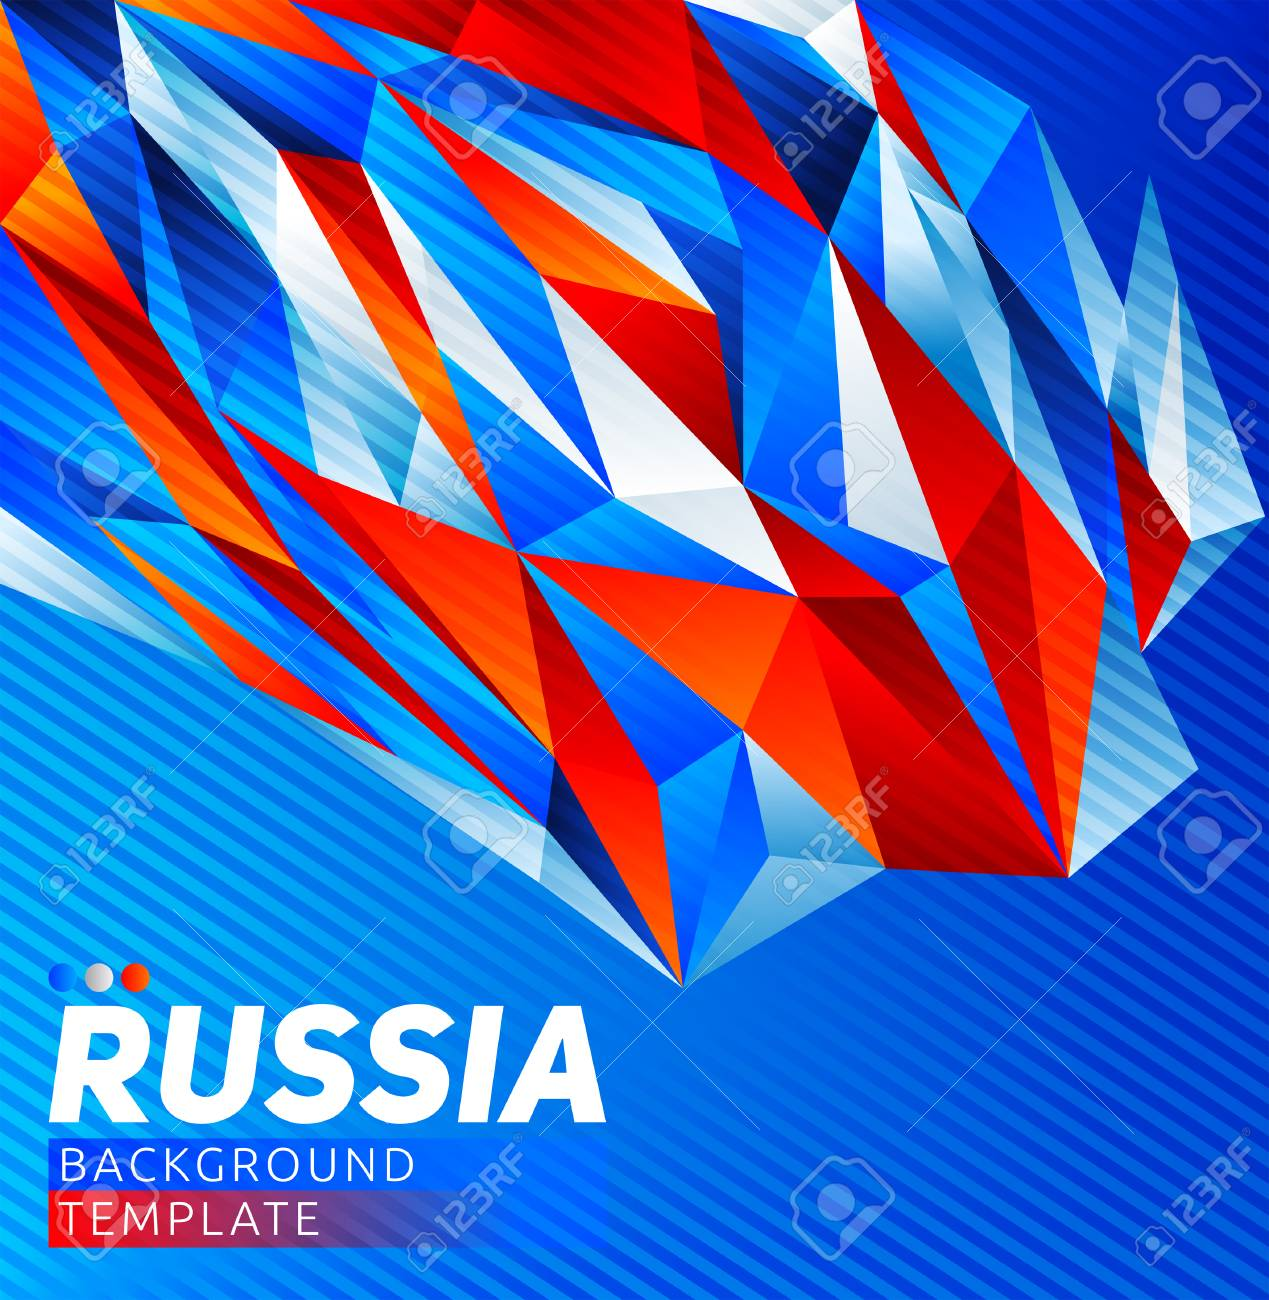 Russia Theme Vector Modern Background Template Russian Flag